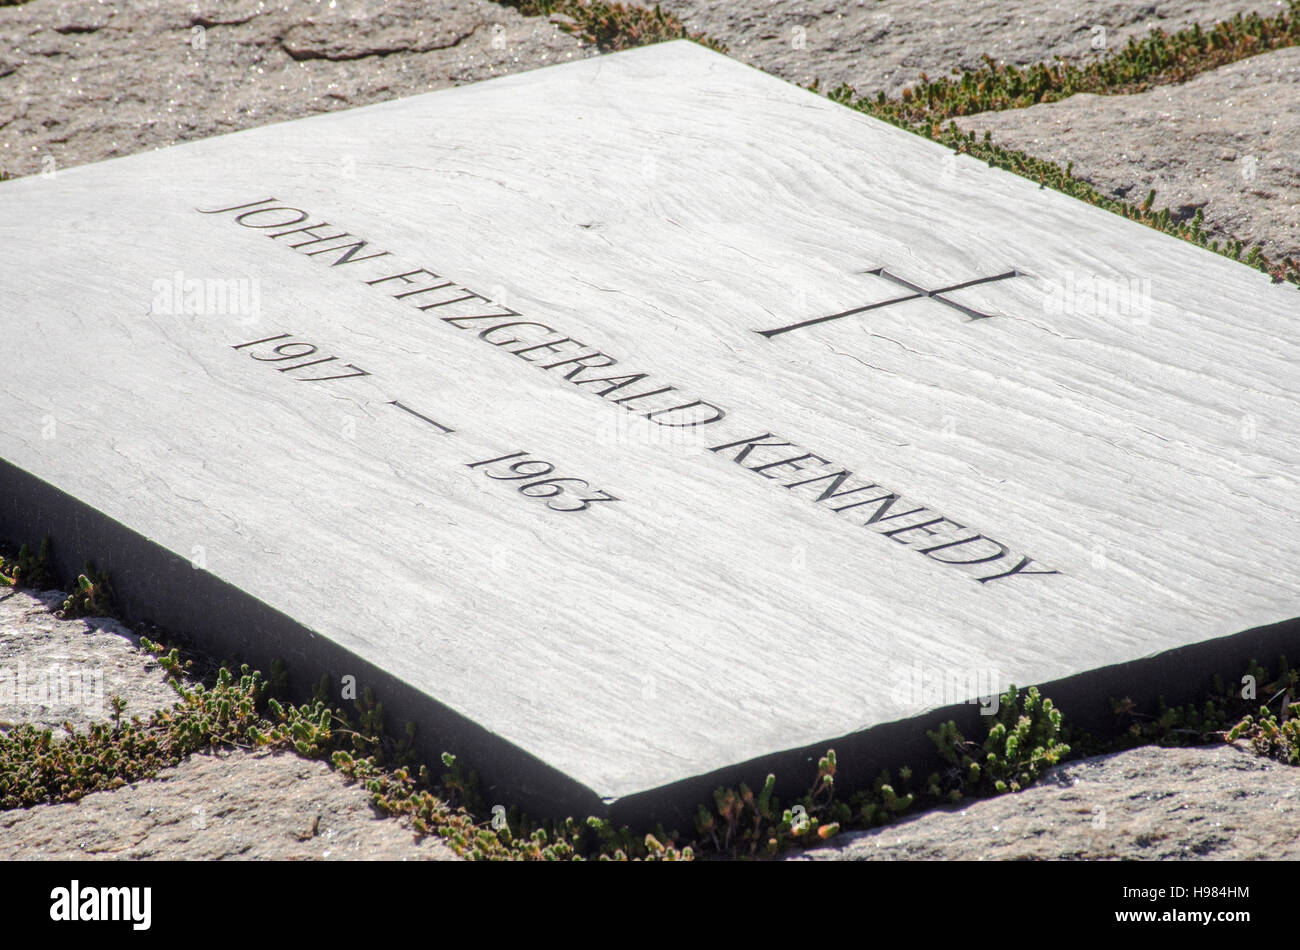 Headstone marks the grave of President John F. Kennedy at Arlington National Cemetery near Washington, DC. - Stock Image